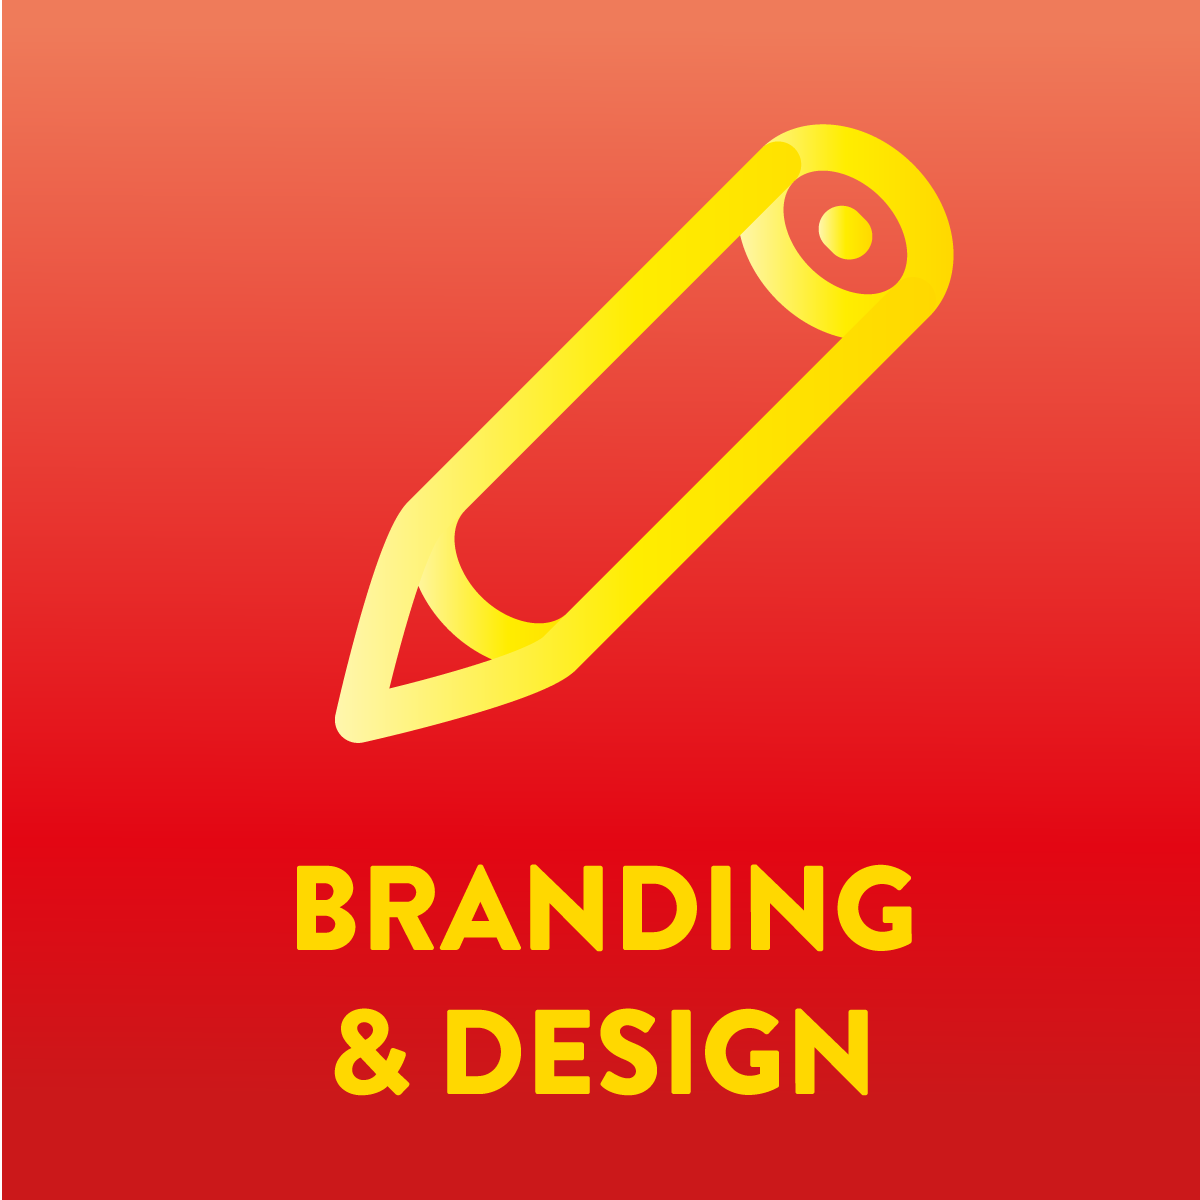 branding, design and corporate identity